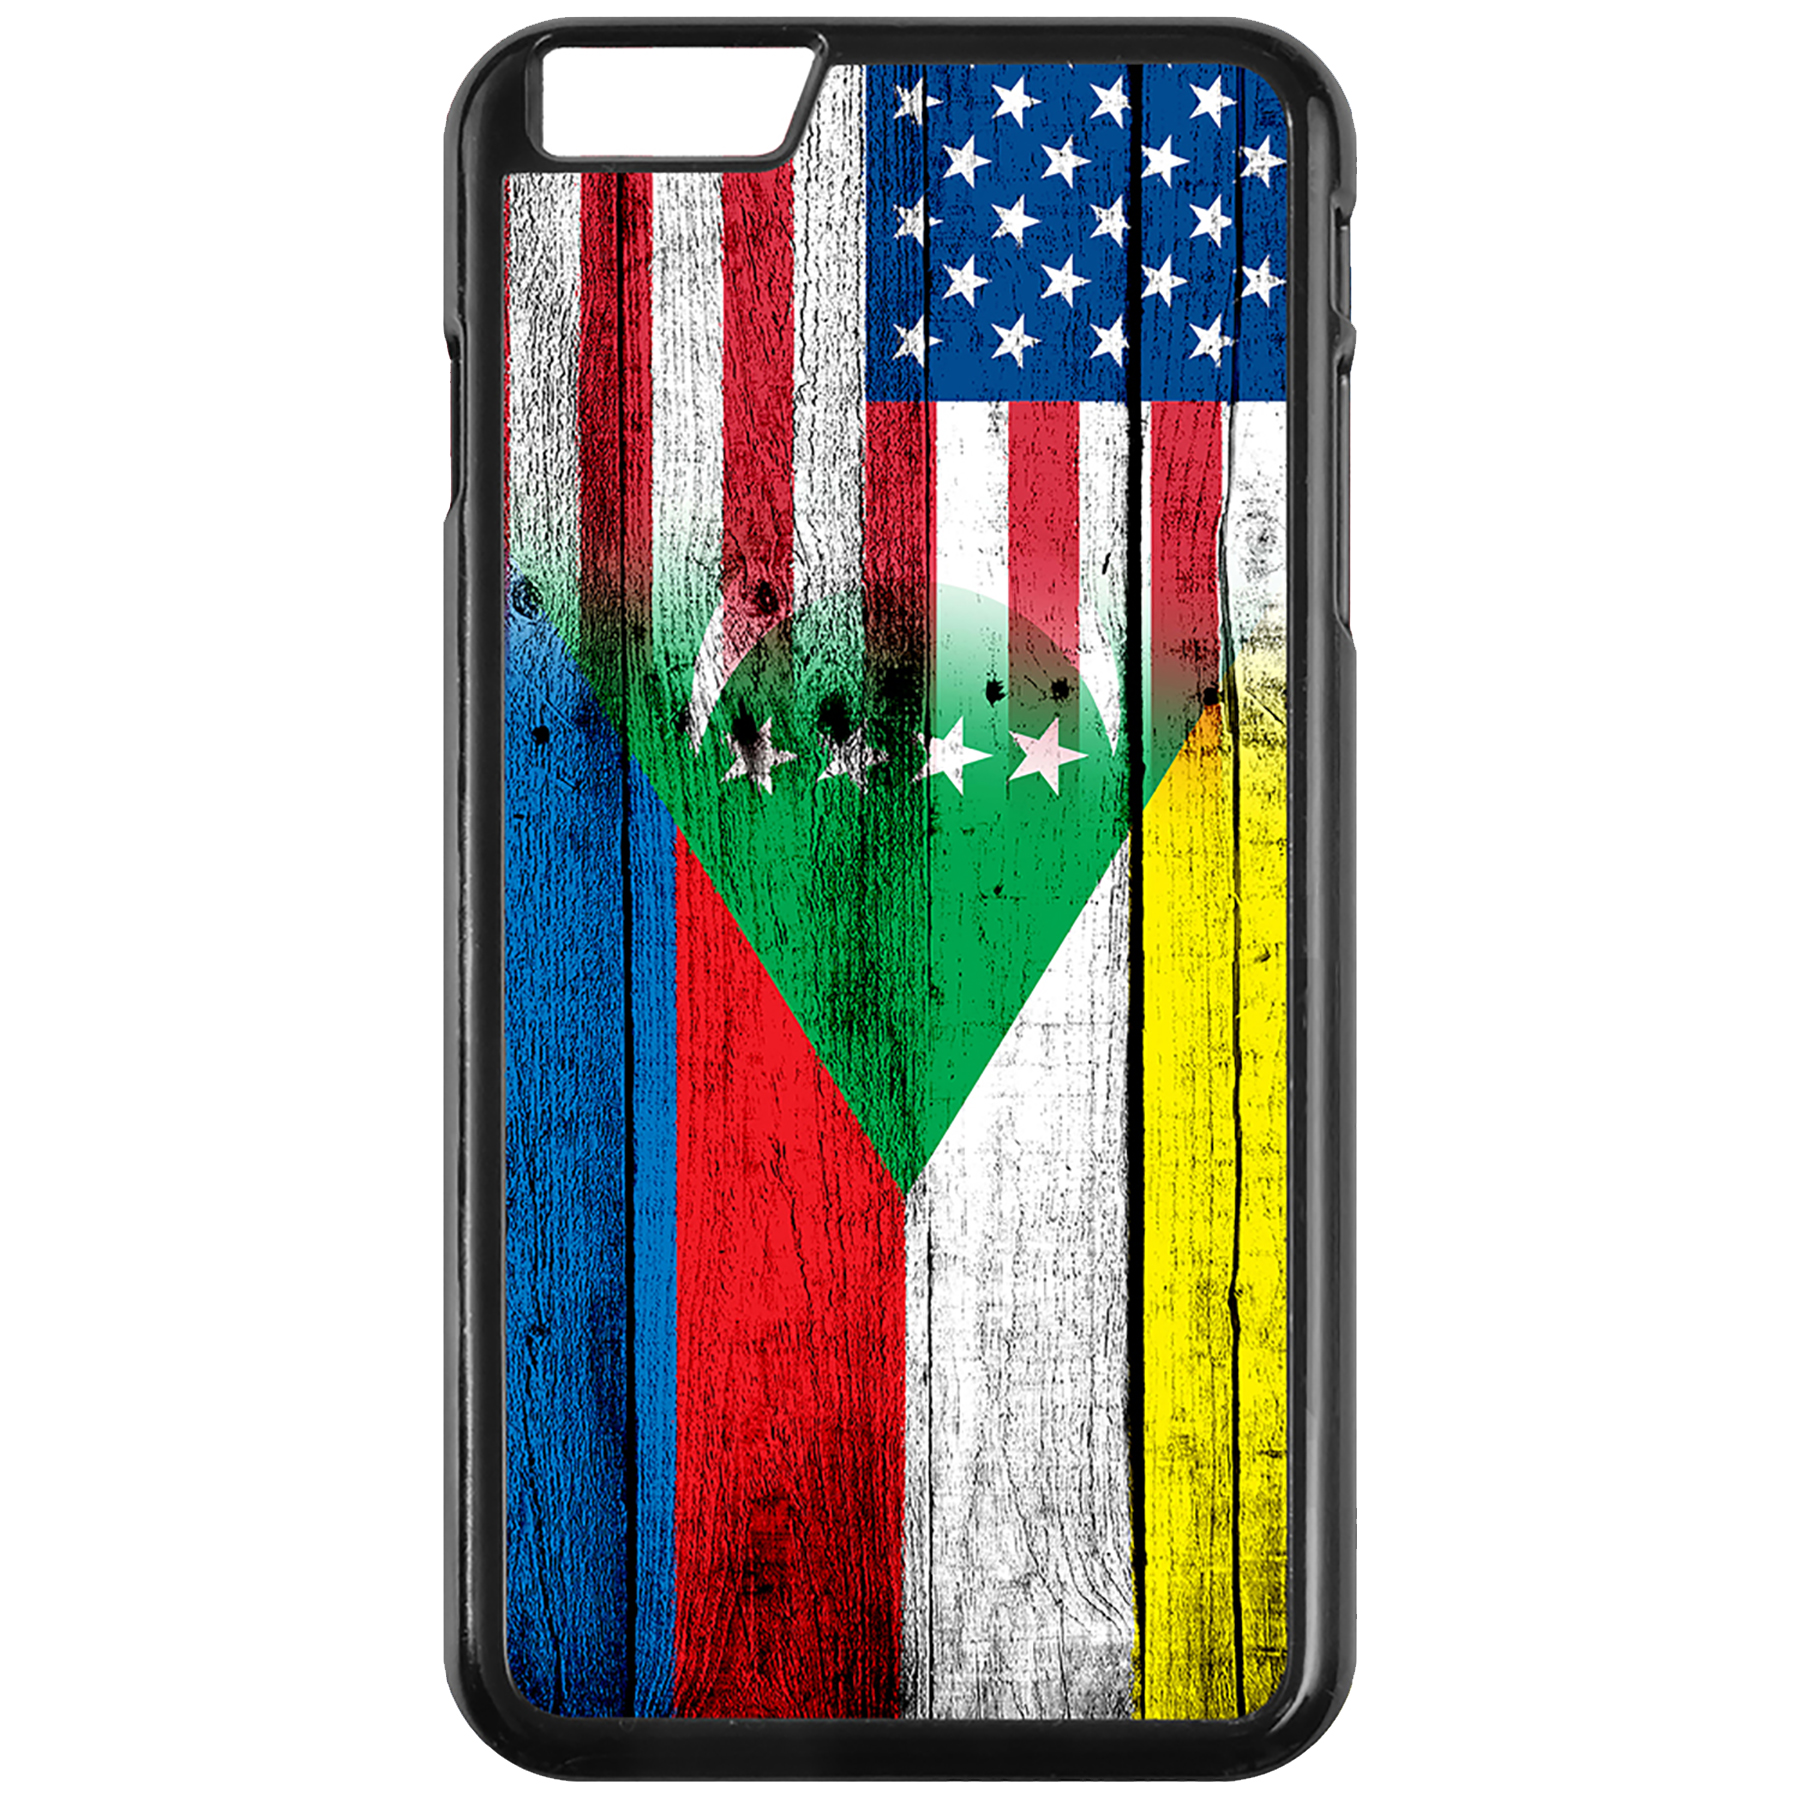 Apple-iPhone-Case-with-Flag-of-Comoros-Comorian-Many-Design-Options thumbnail 23